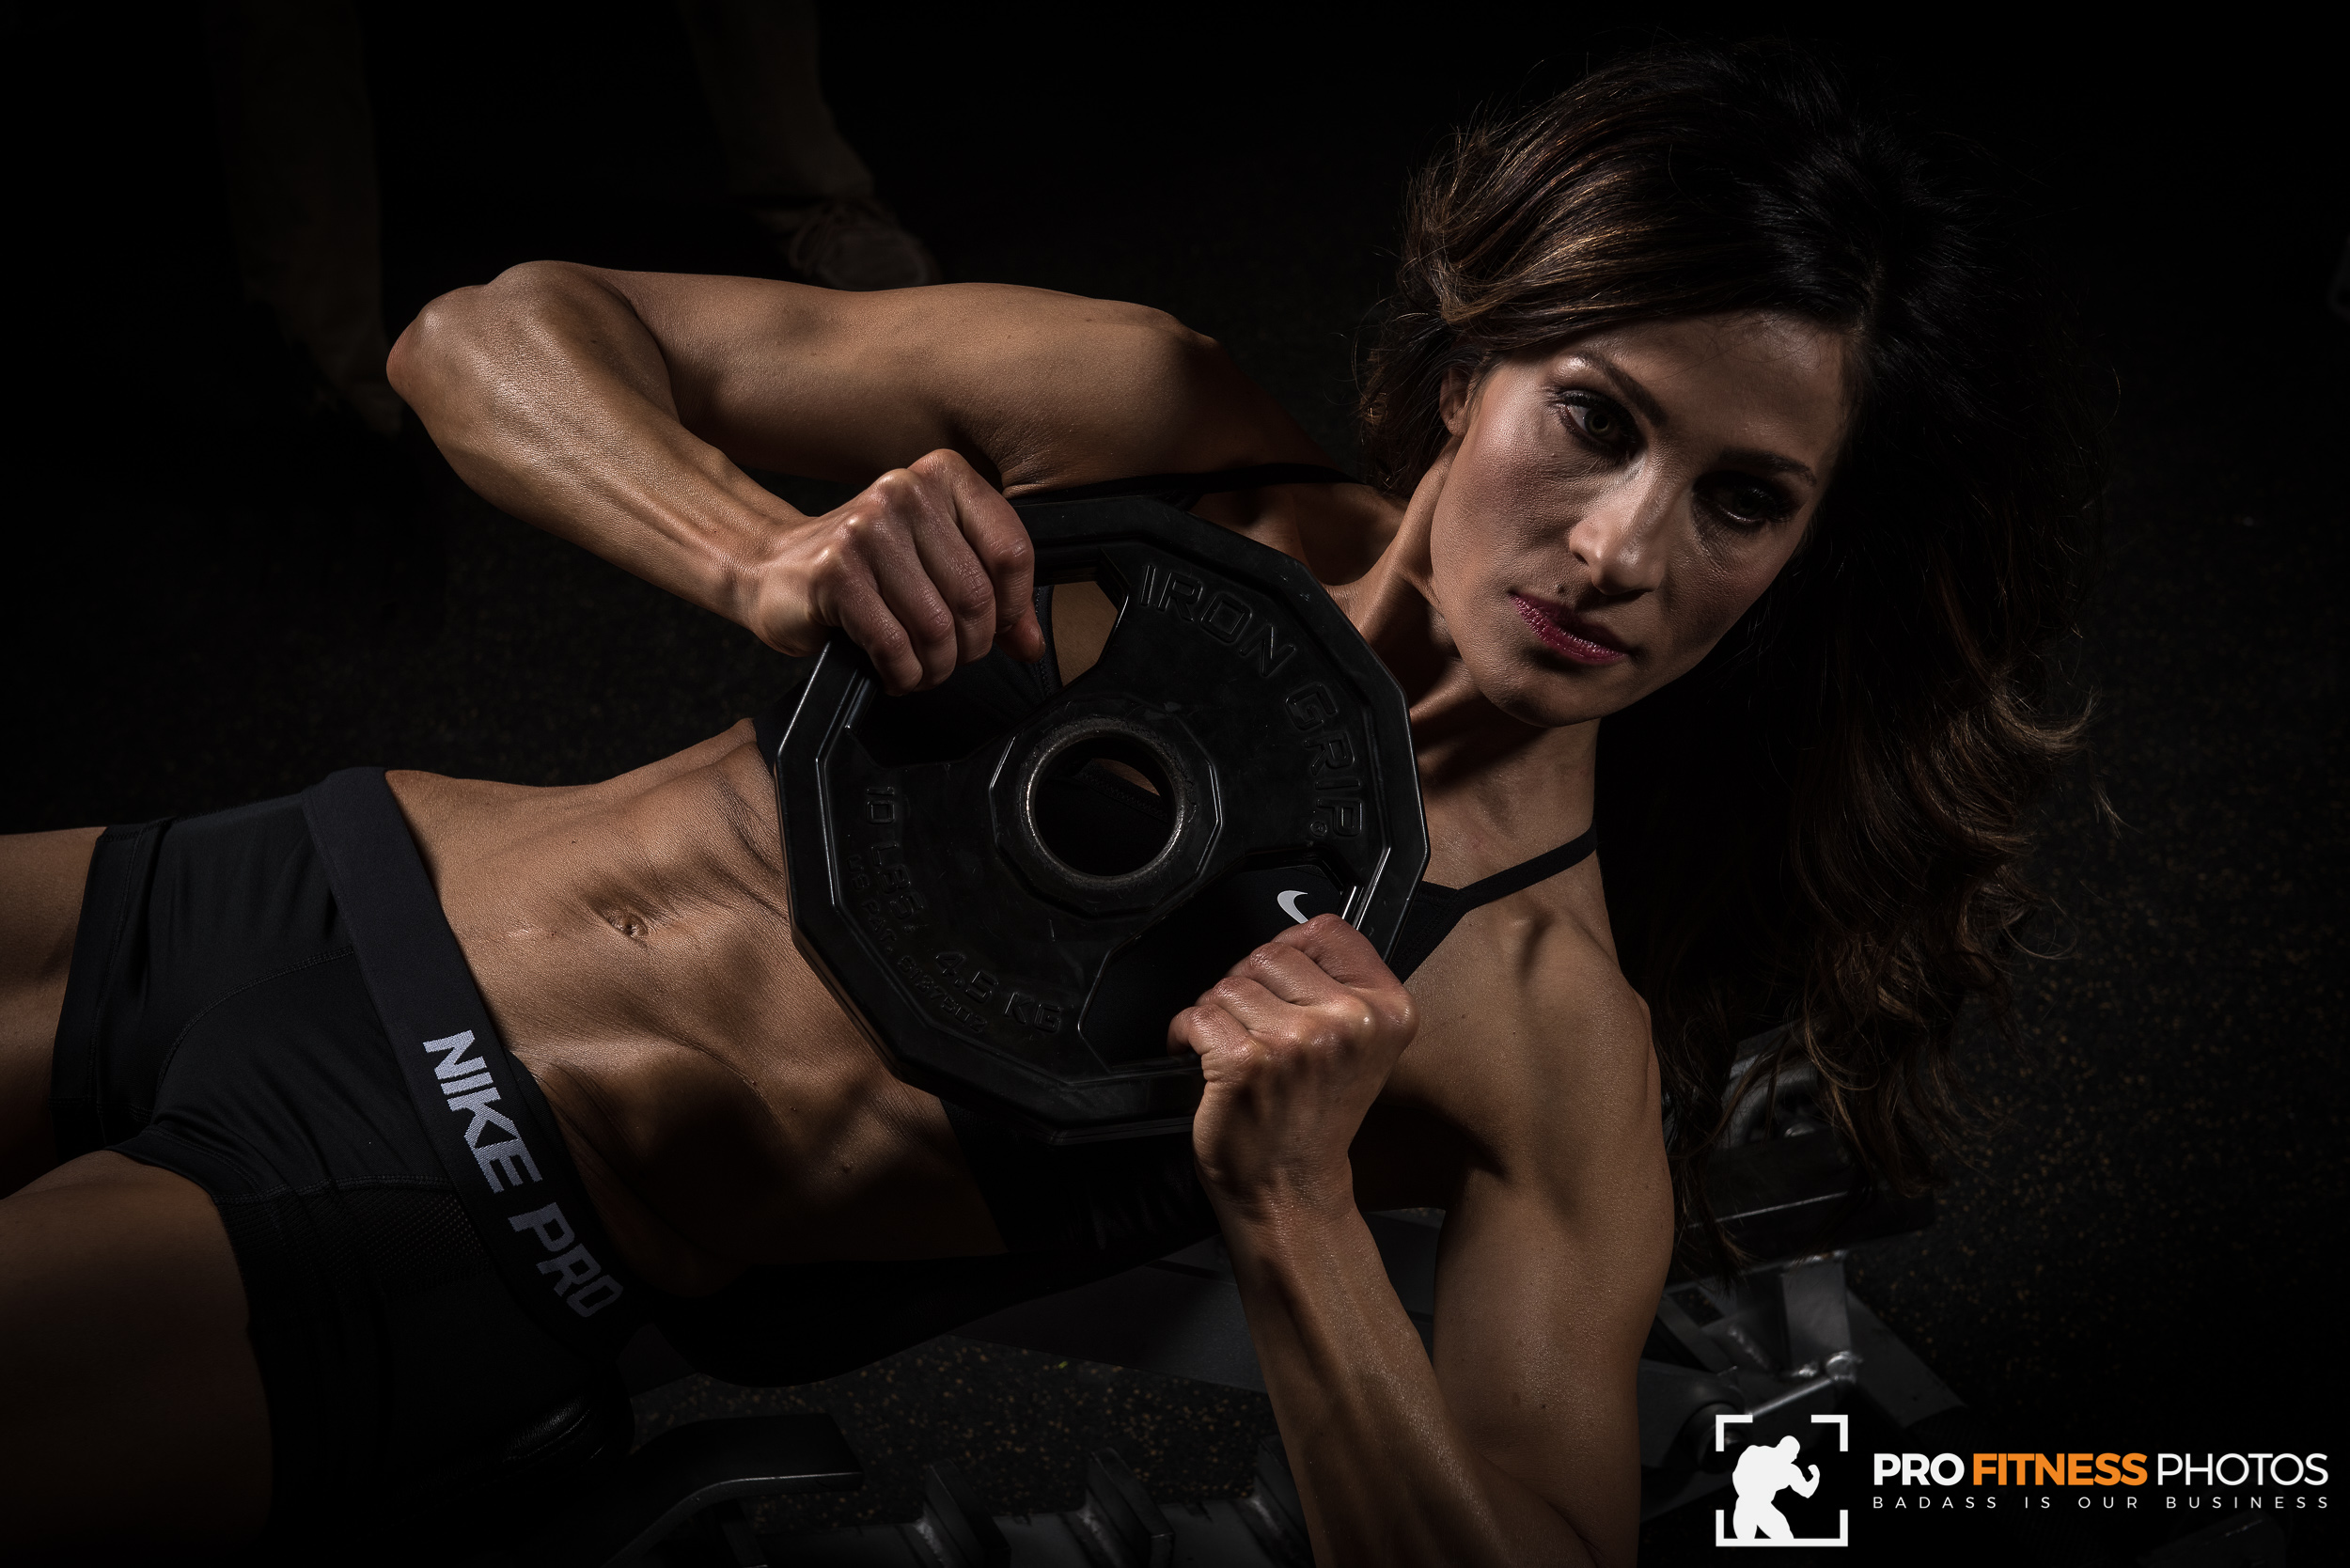 utah-fitness-photography-jennifer-05.jpg